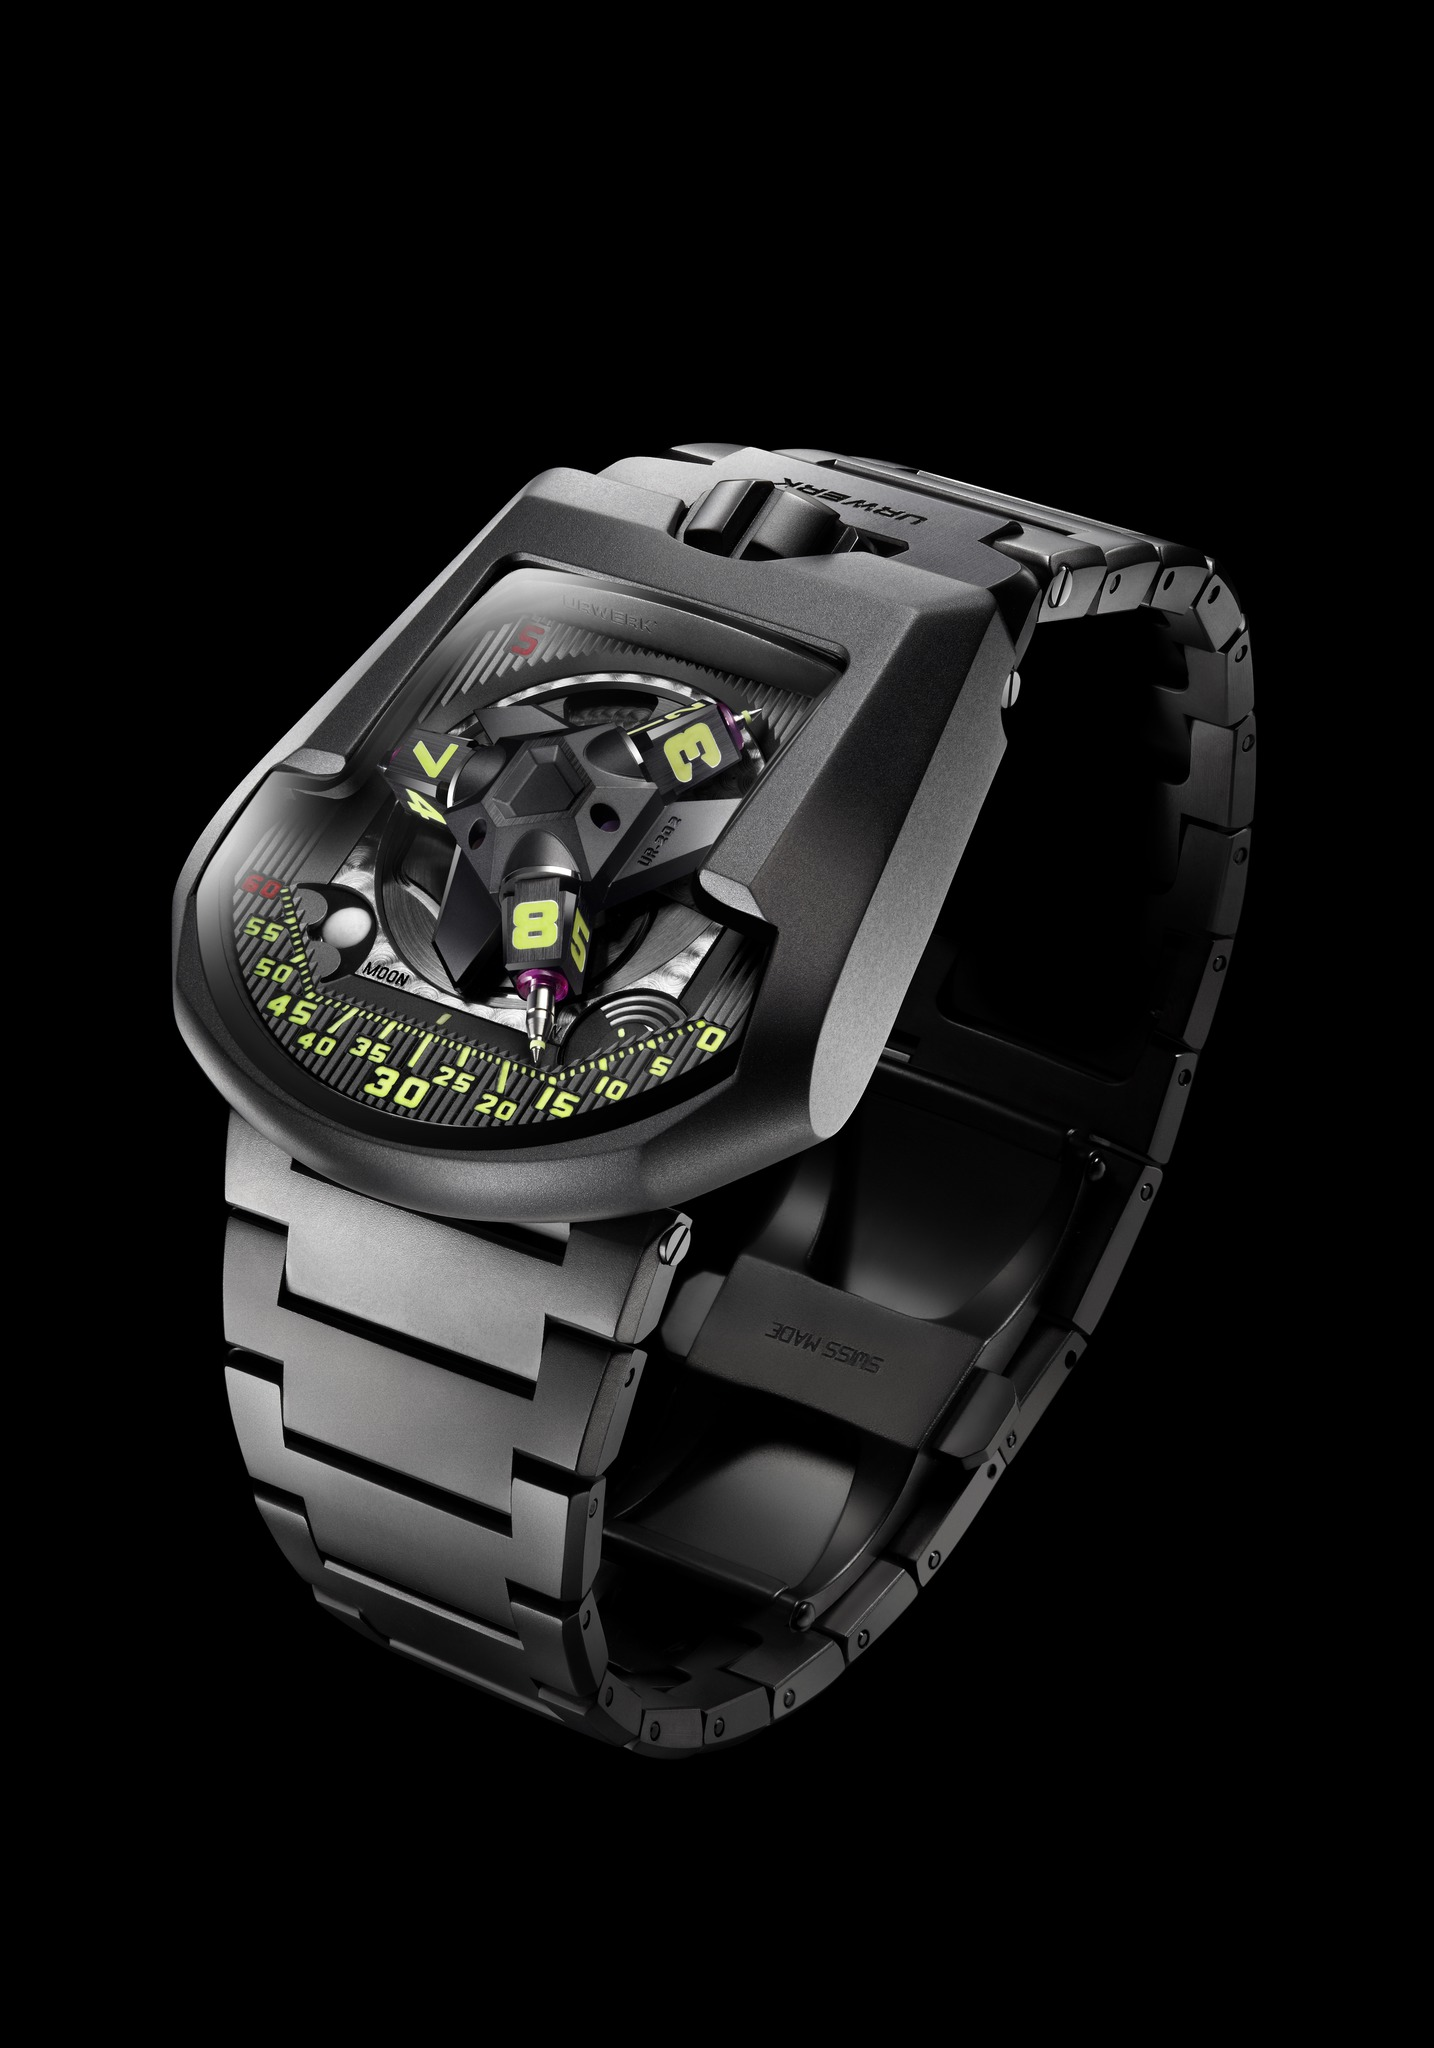 Replica Urwerk UR-202S The Hammerhead AlTiN-Coated Steel Watch